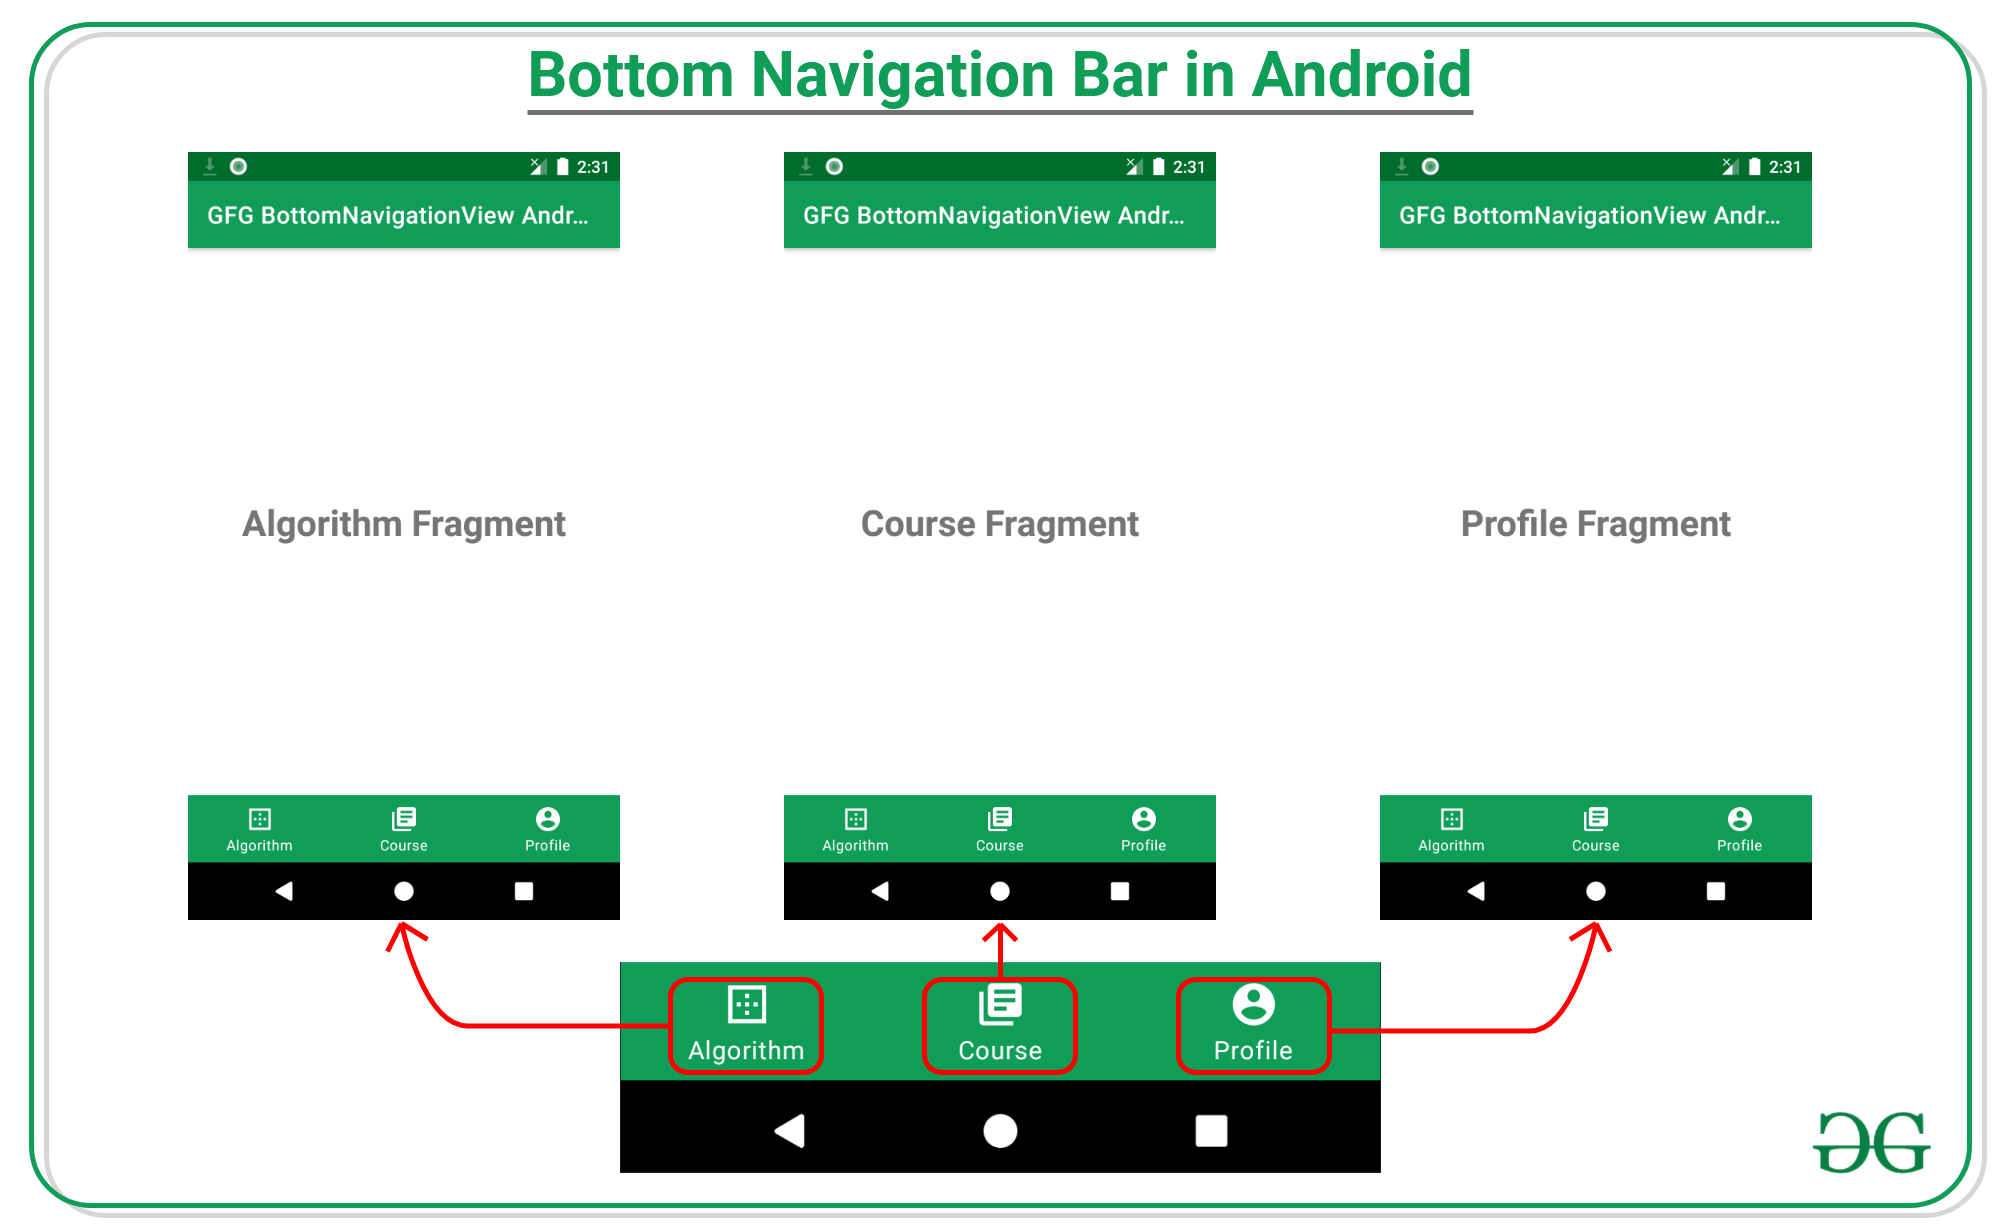 BottomNavigationView in Android